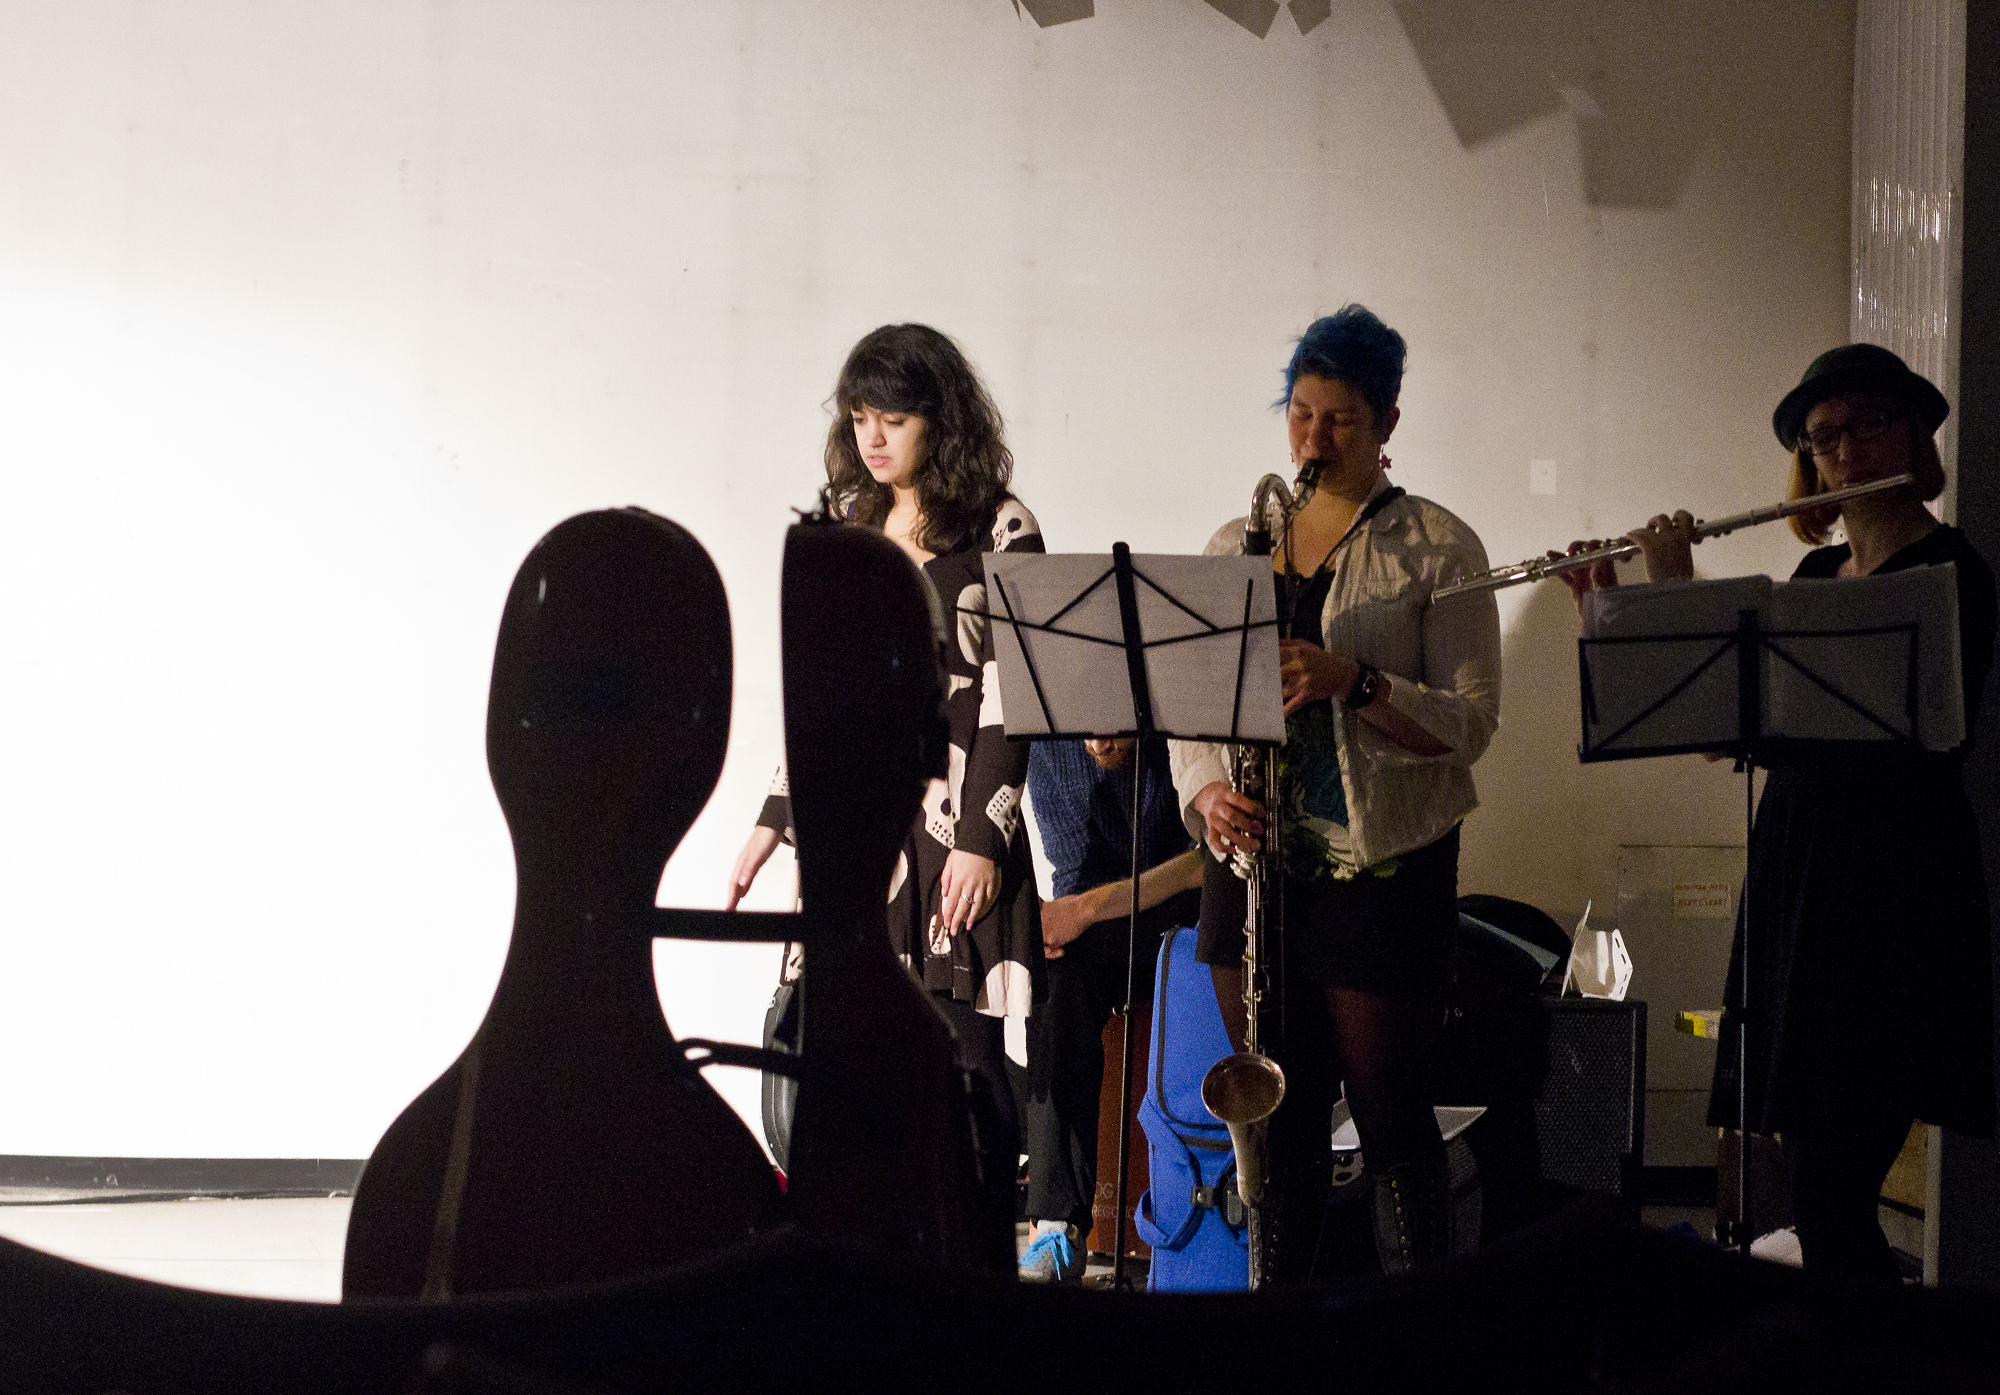 Laila, Emily, cello case, rehearsing, lovely head